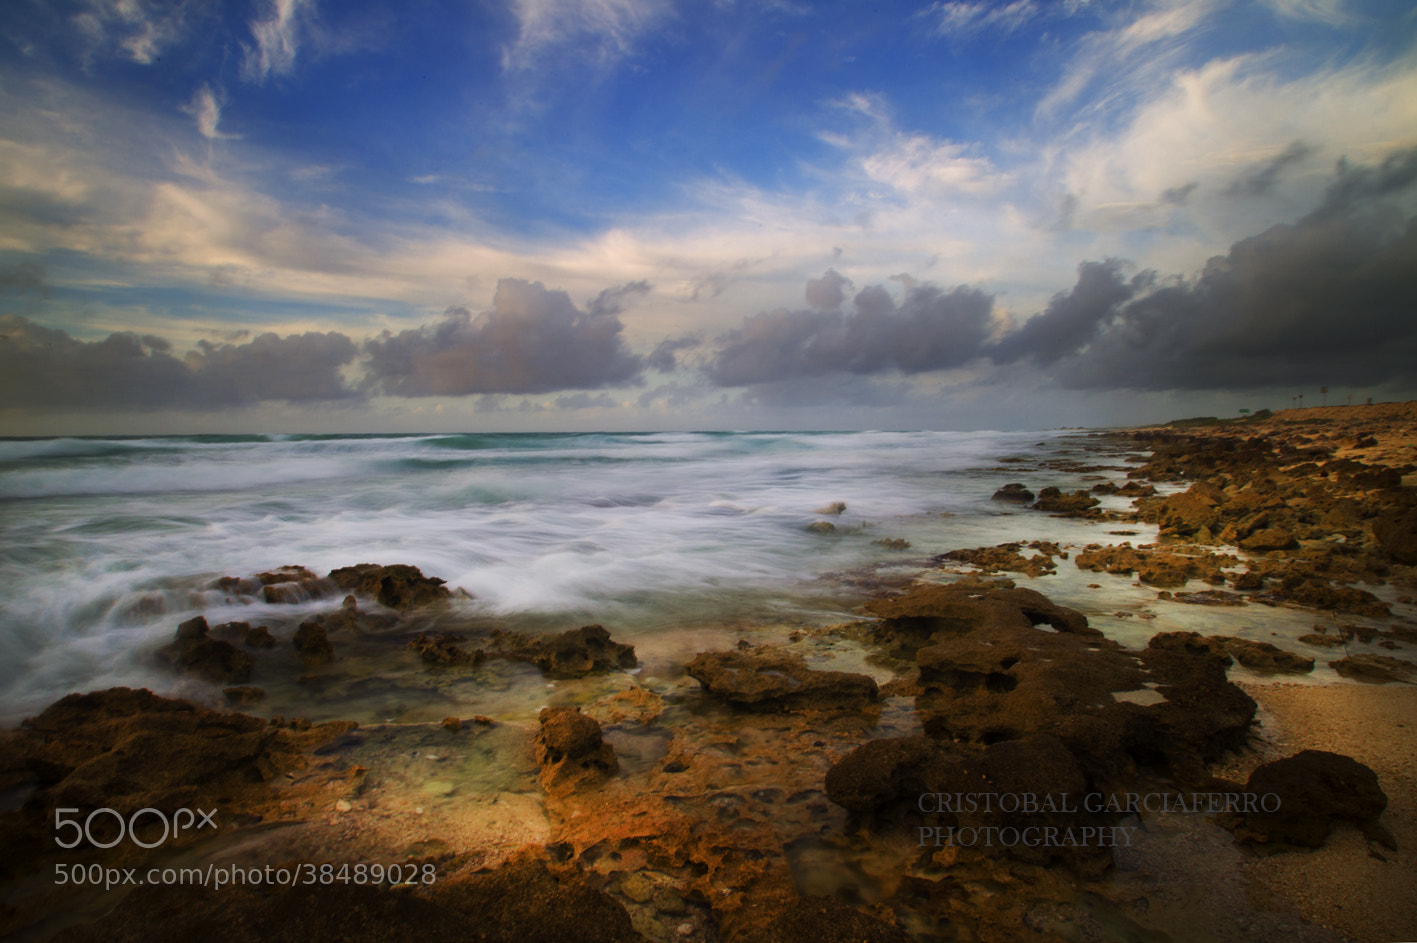 Photograph Cozumel in the morning by Cristobal Garciaferro Rubio on 500px